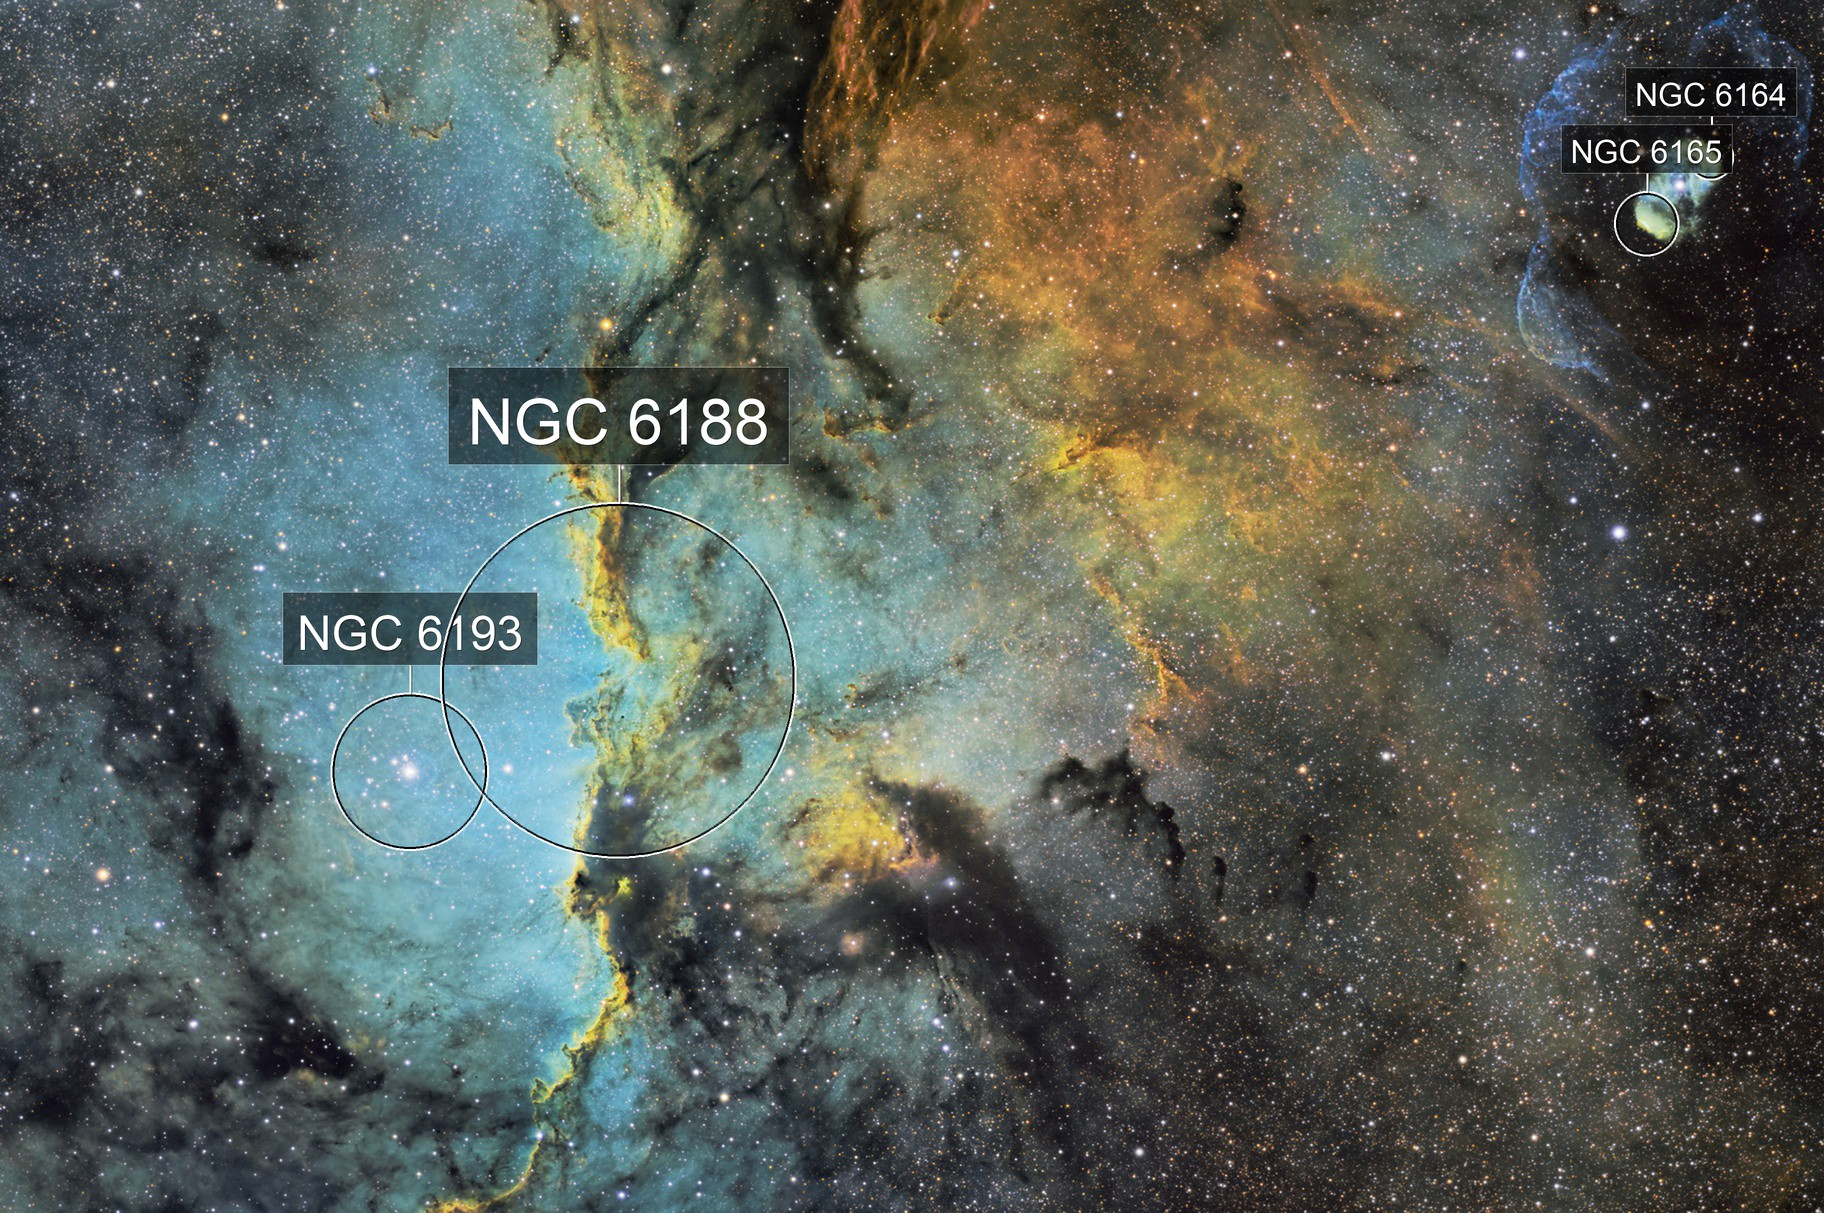 Fighting Dragons (NGC6188) in SHO with special guest star appearance by PK 336-0.1